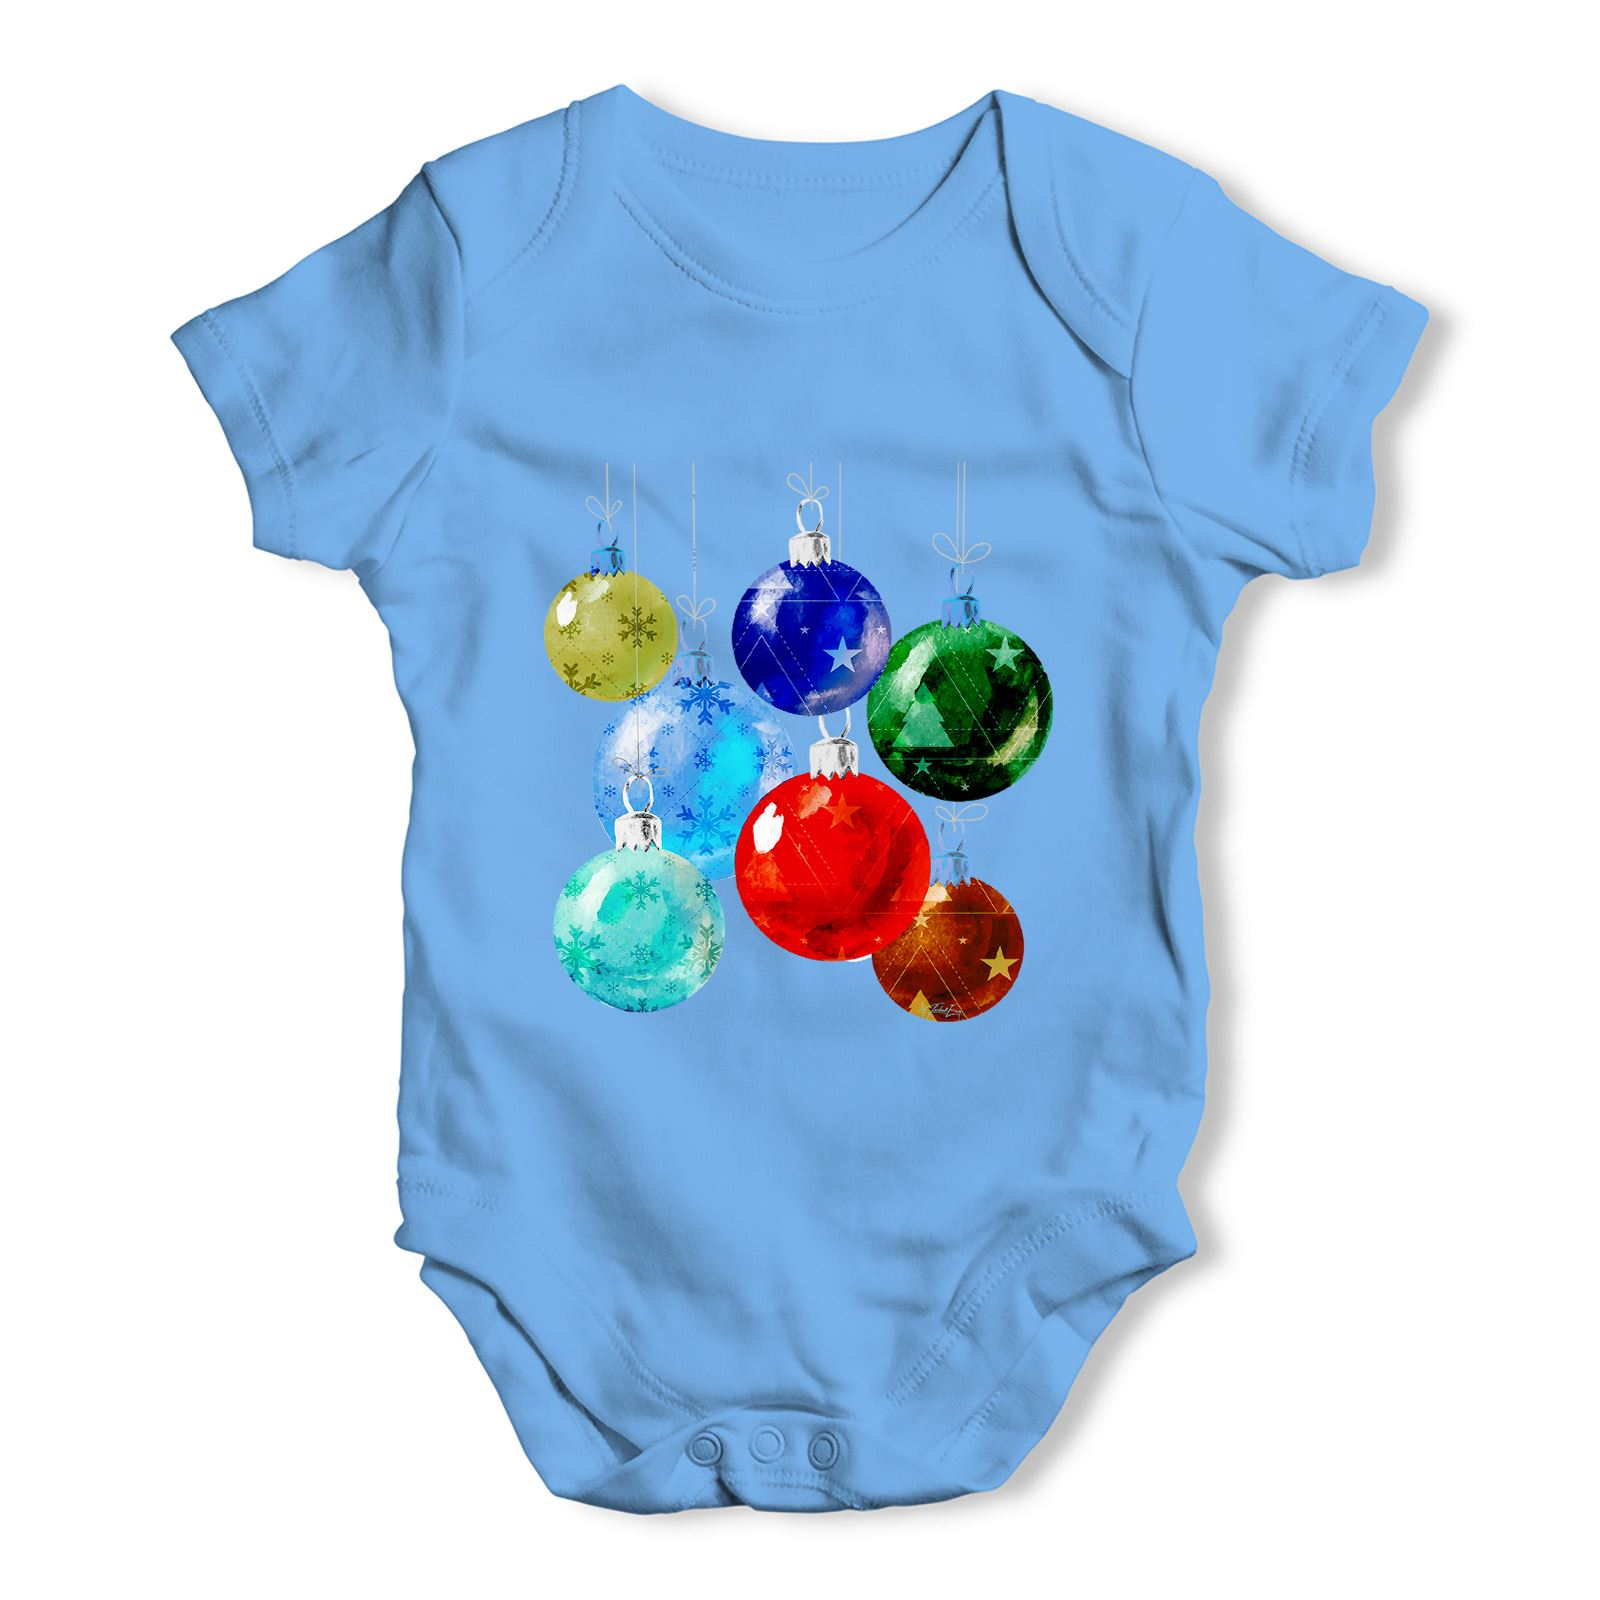 twisted envy christmas baubles baby unisex funny baby grow bodysuit